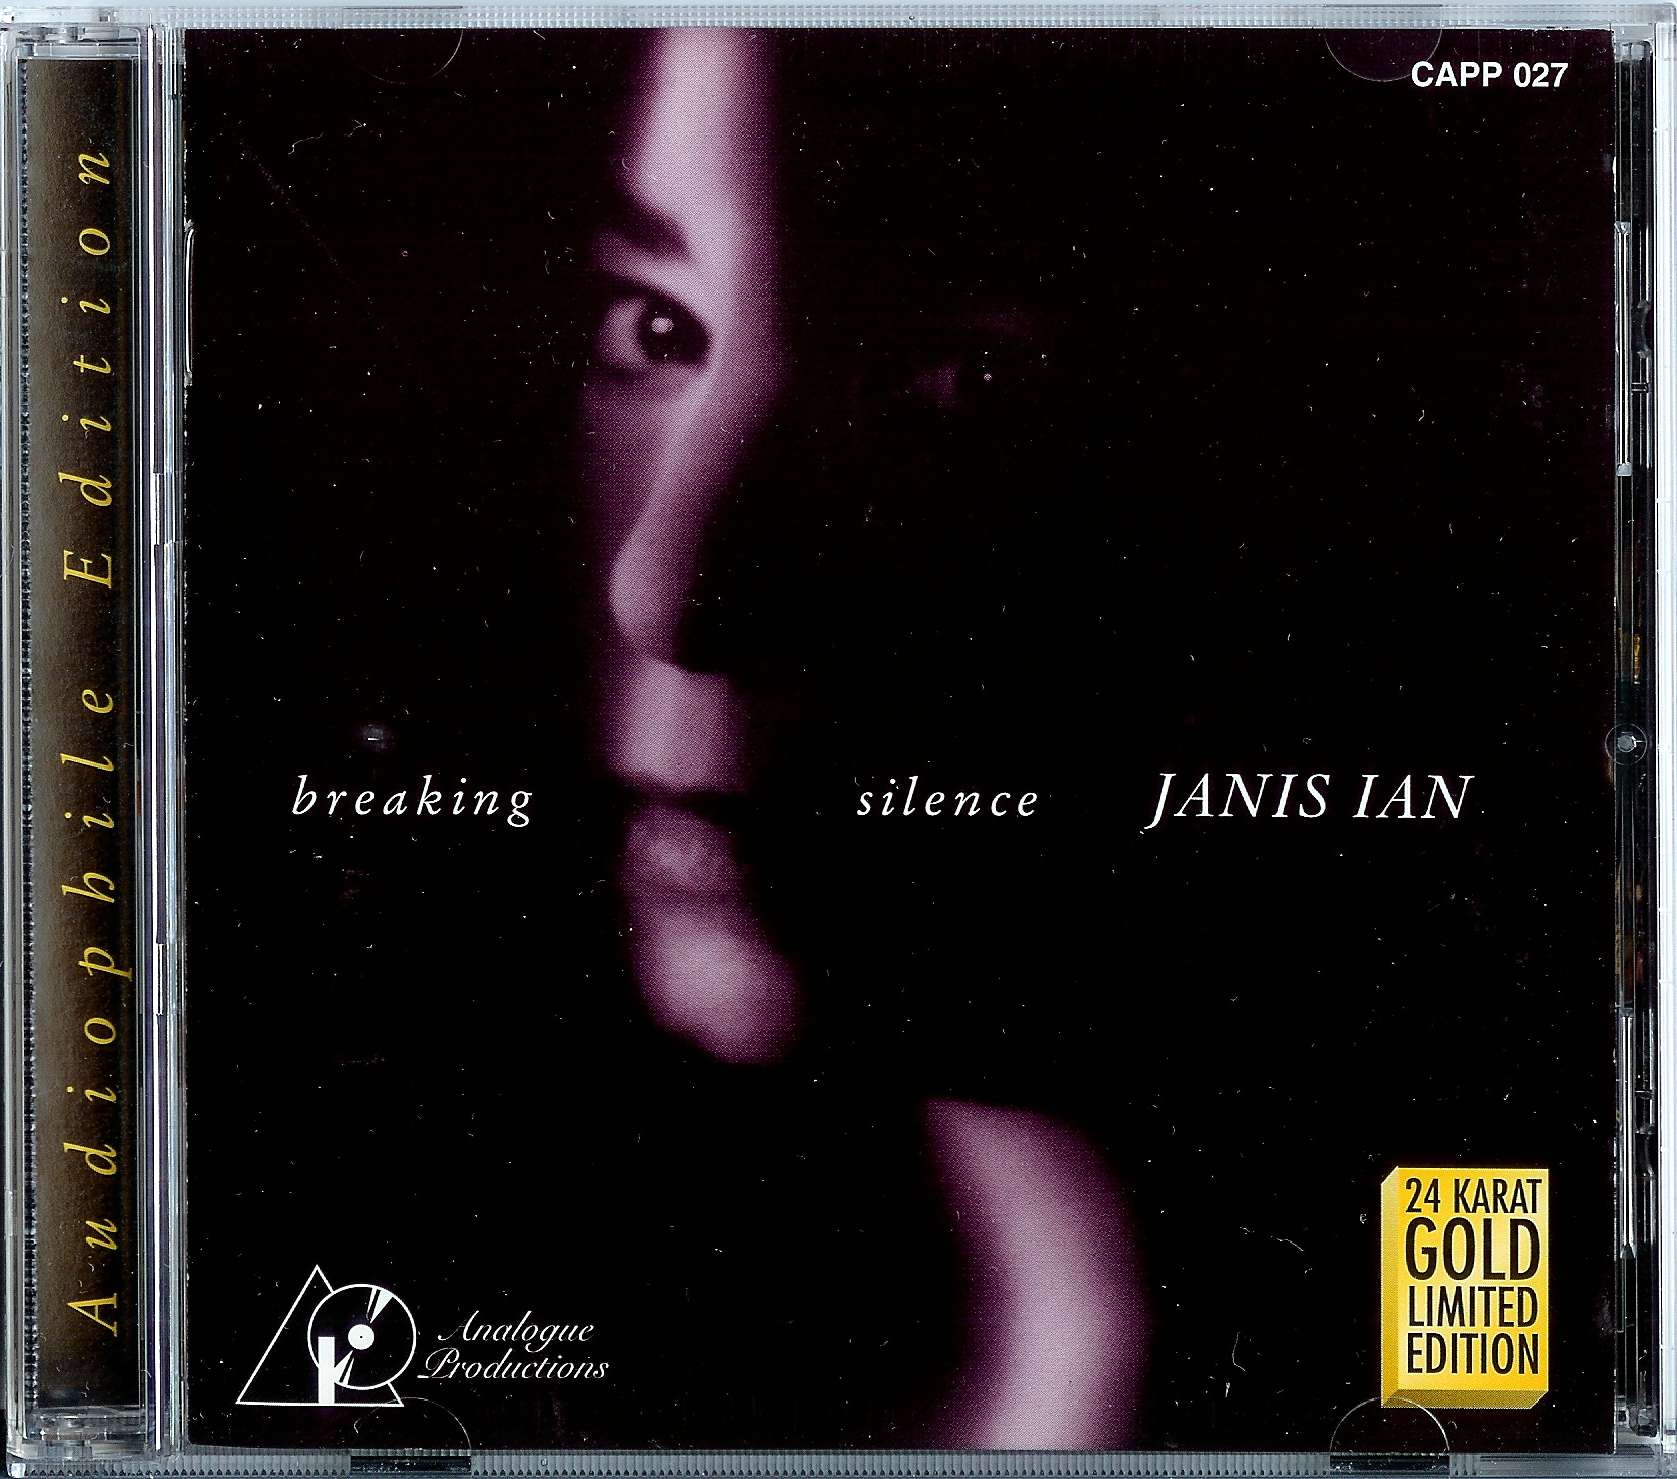 Janis Ian - breaking silence (Analogue Productions 24KT Gold